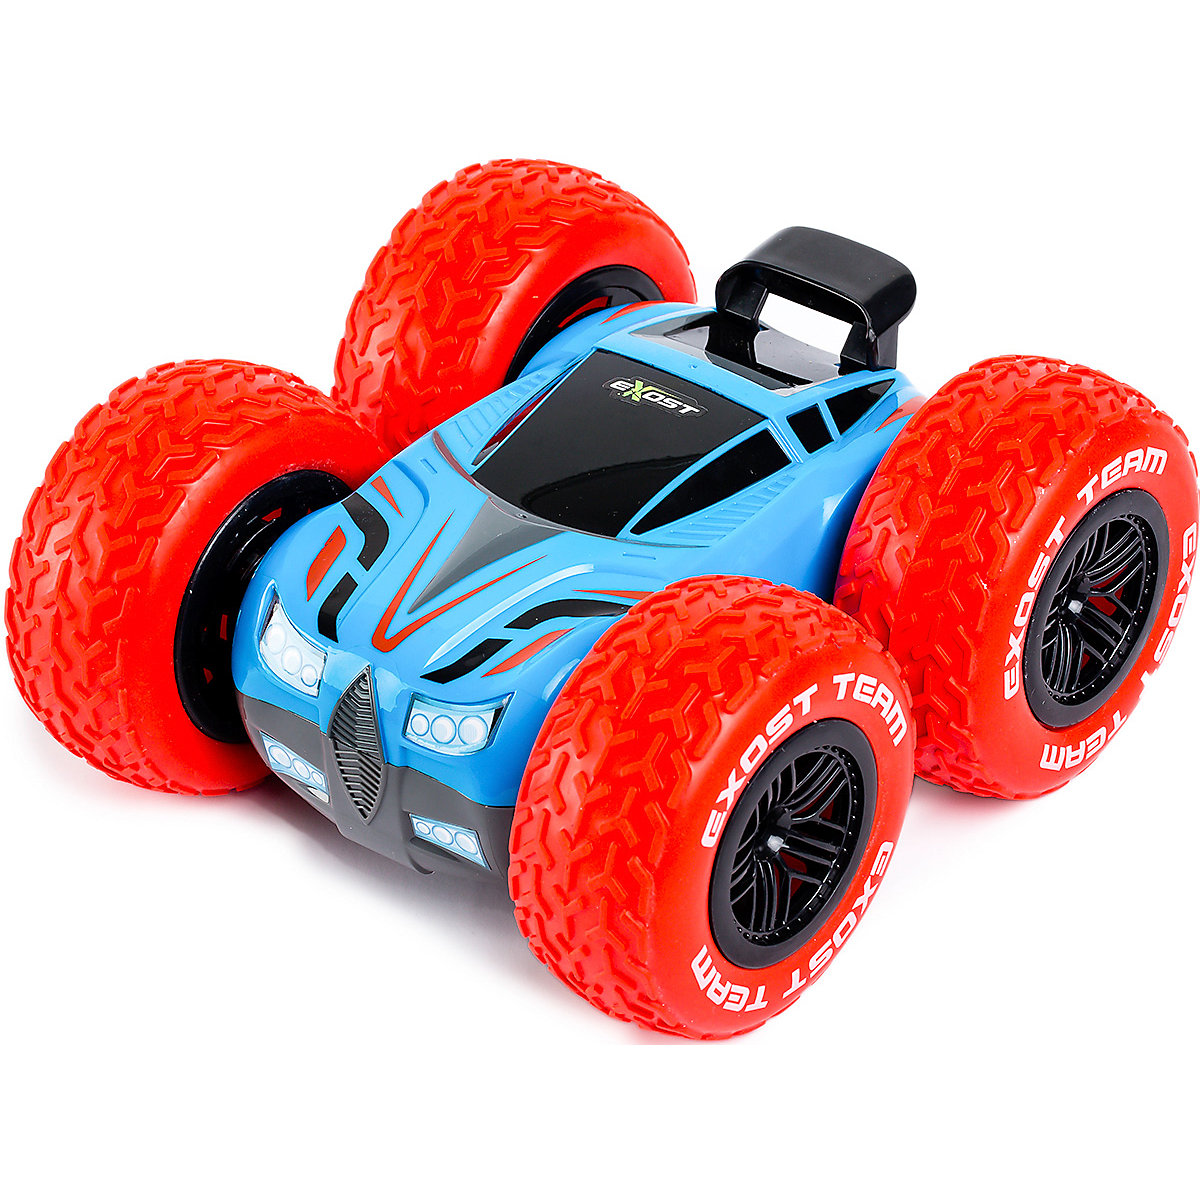 Silverlit RC Cars 10077713 Remote Control Toys radio-controlled toy games children Kids car